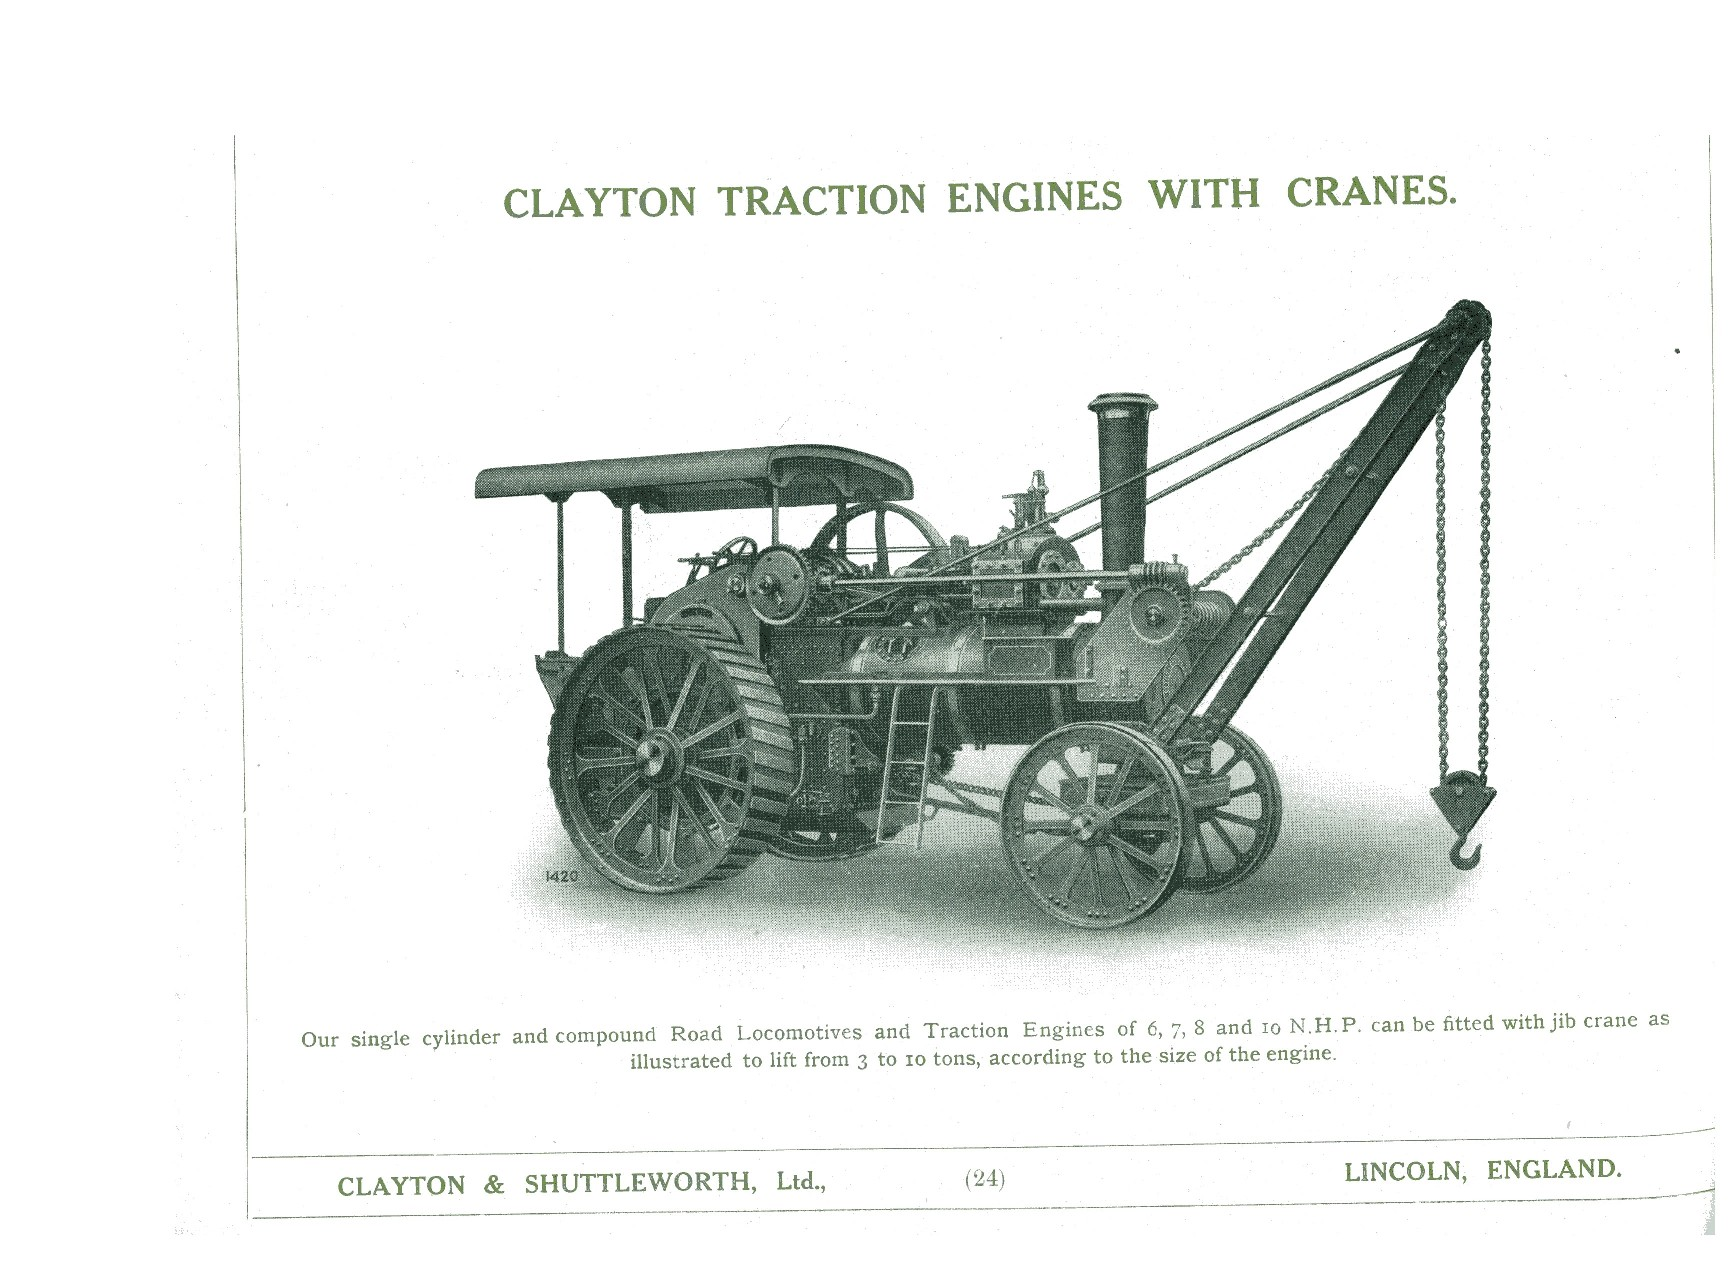 From Old Clayton Catalogue showing similar Engine